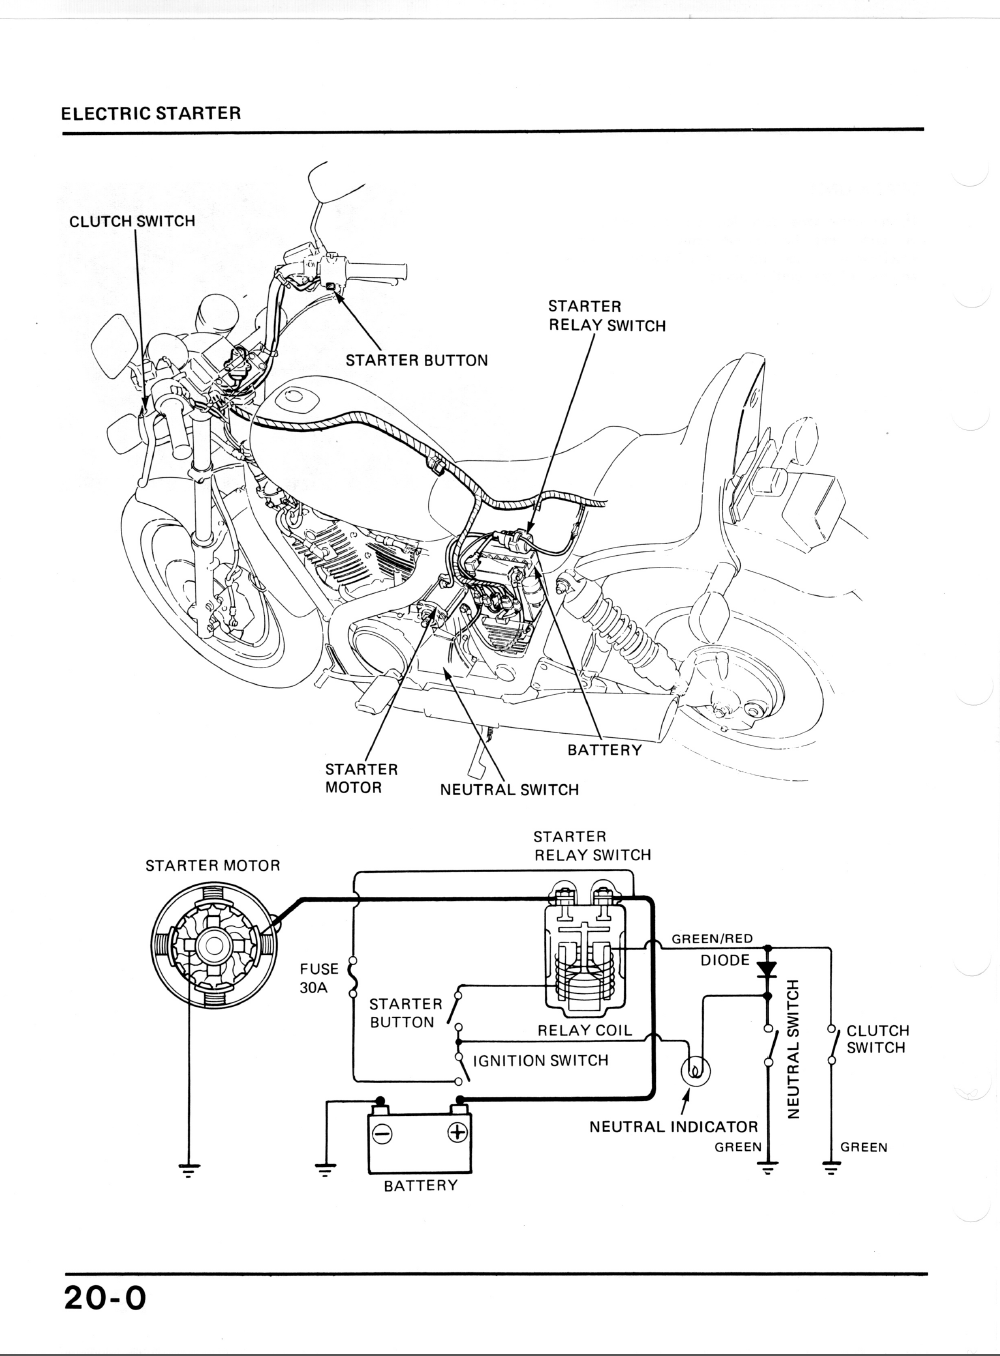 9266d1409799691 1984 honda shadow 700 electric stater 1984 honda shadow 700 Chinese ATV Wiring Diagrams at gsmx.co